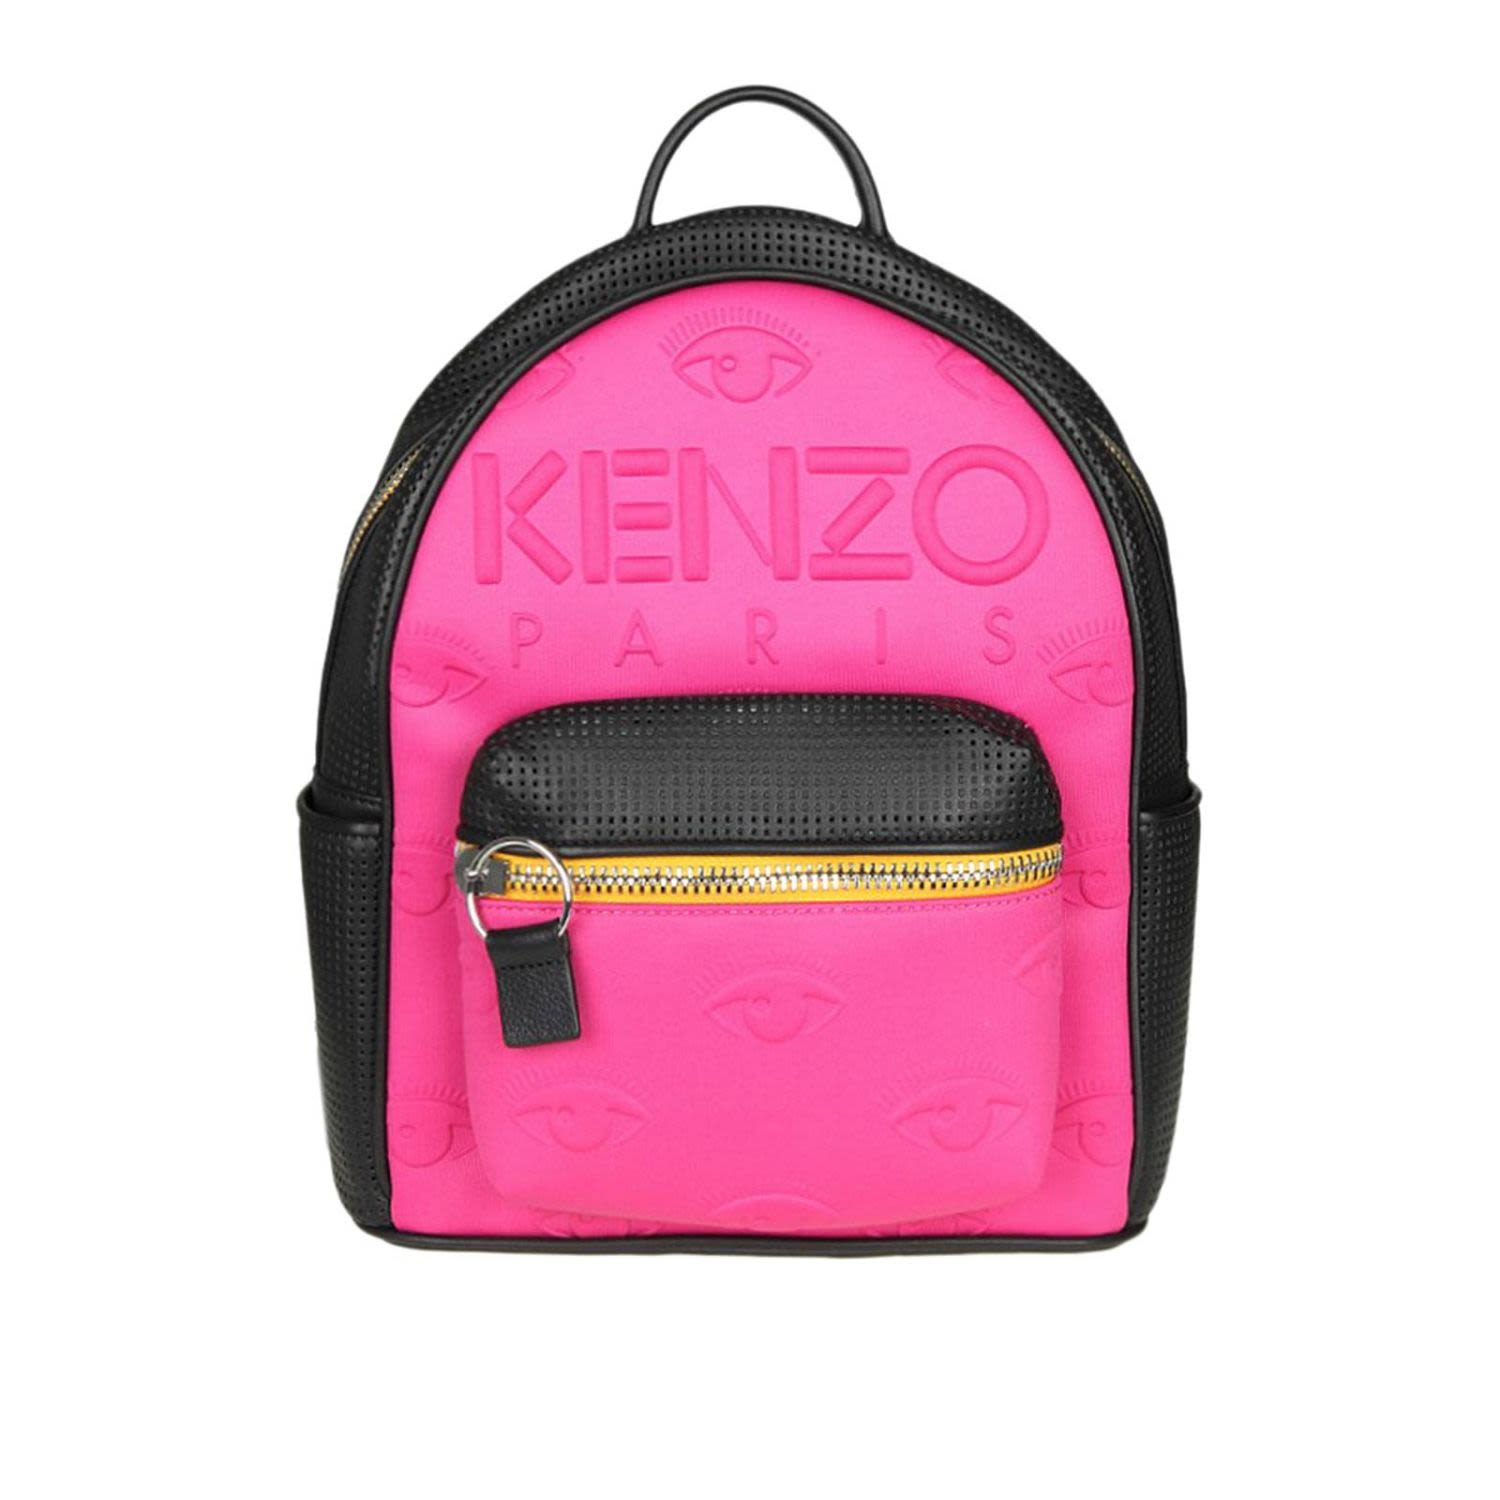 Backpack Shoulder Bag Women Kenzo